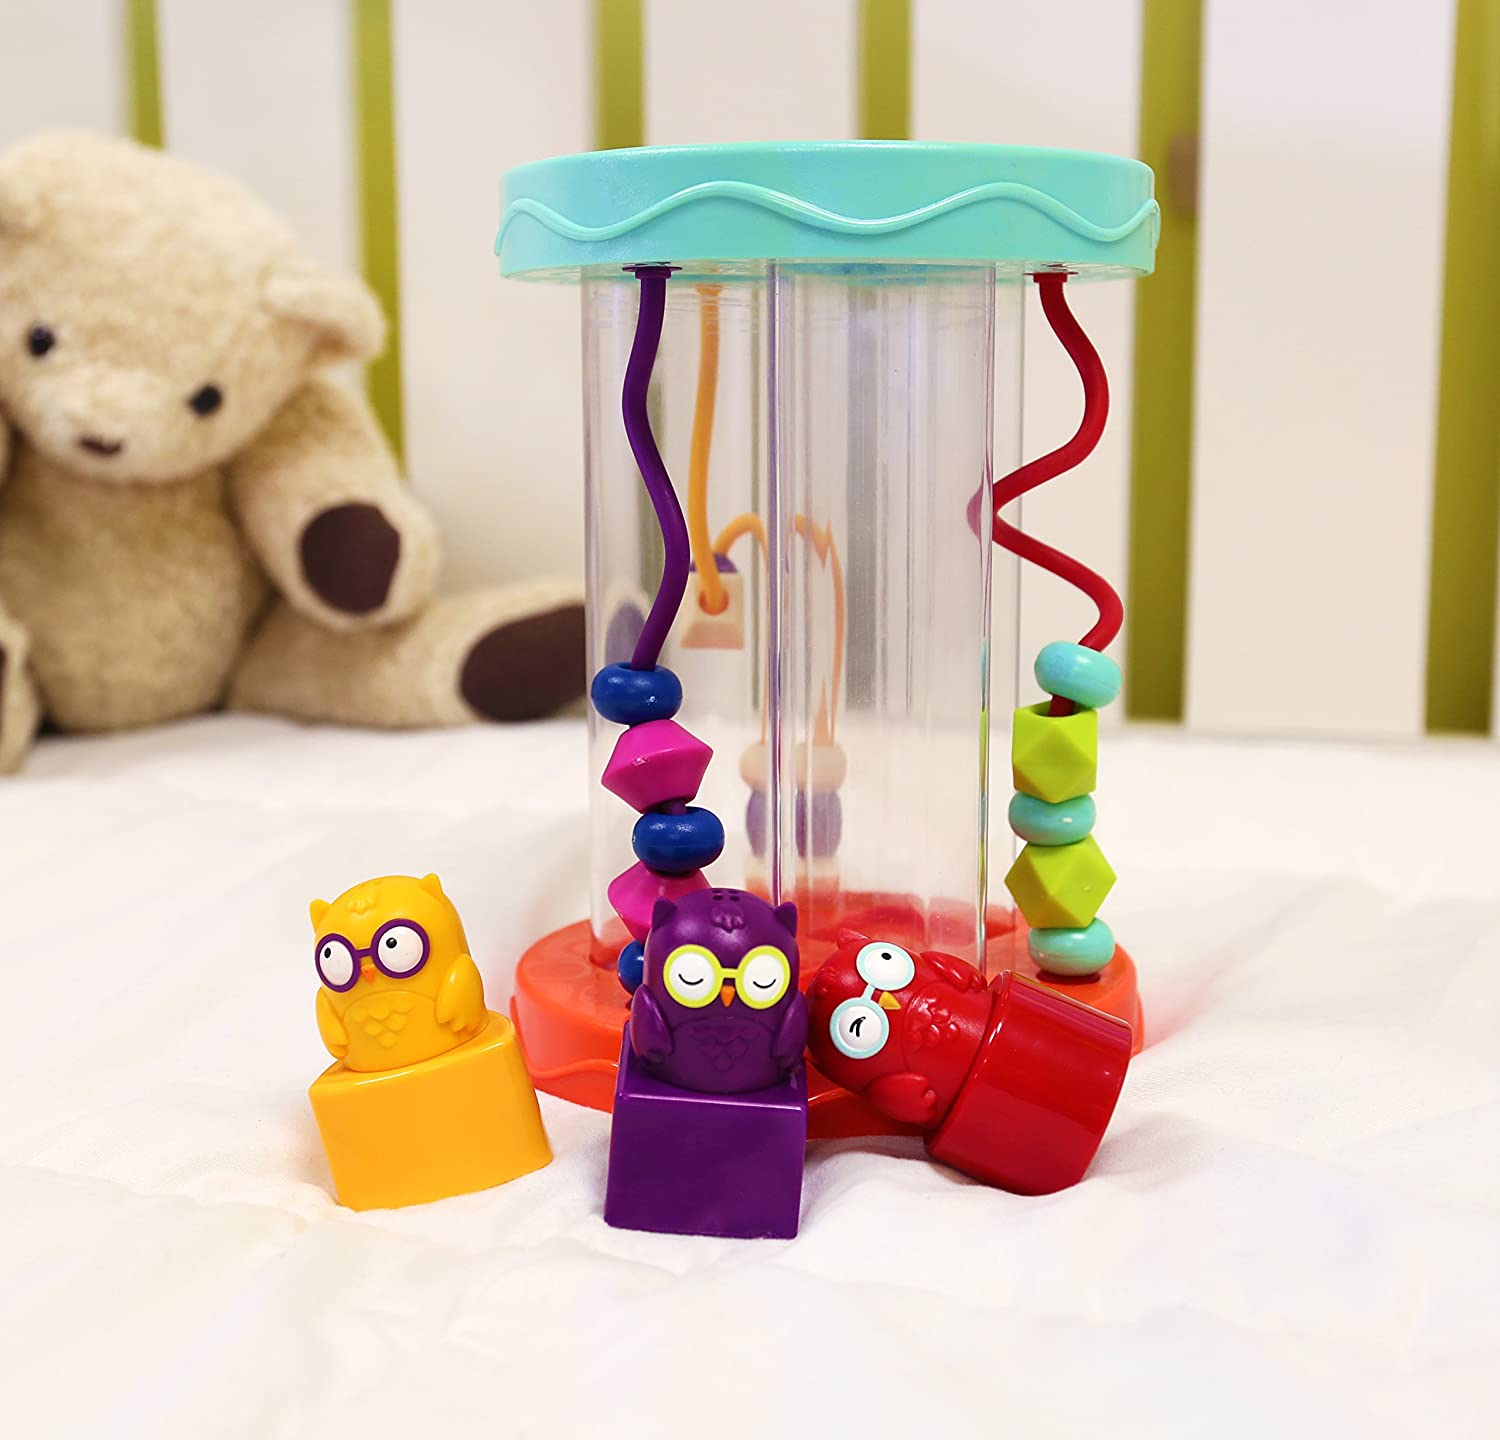 Educational Toy for Toddlers /& Babies 3 Owls Hooty-Hoo toys by Battat Fun Game B Bead Maze /& Wacky Sounds 3 Colorful Shapes 6 x 6 x 8.12 Shape Sorter Multicolor